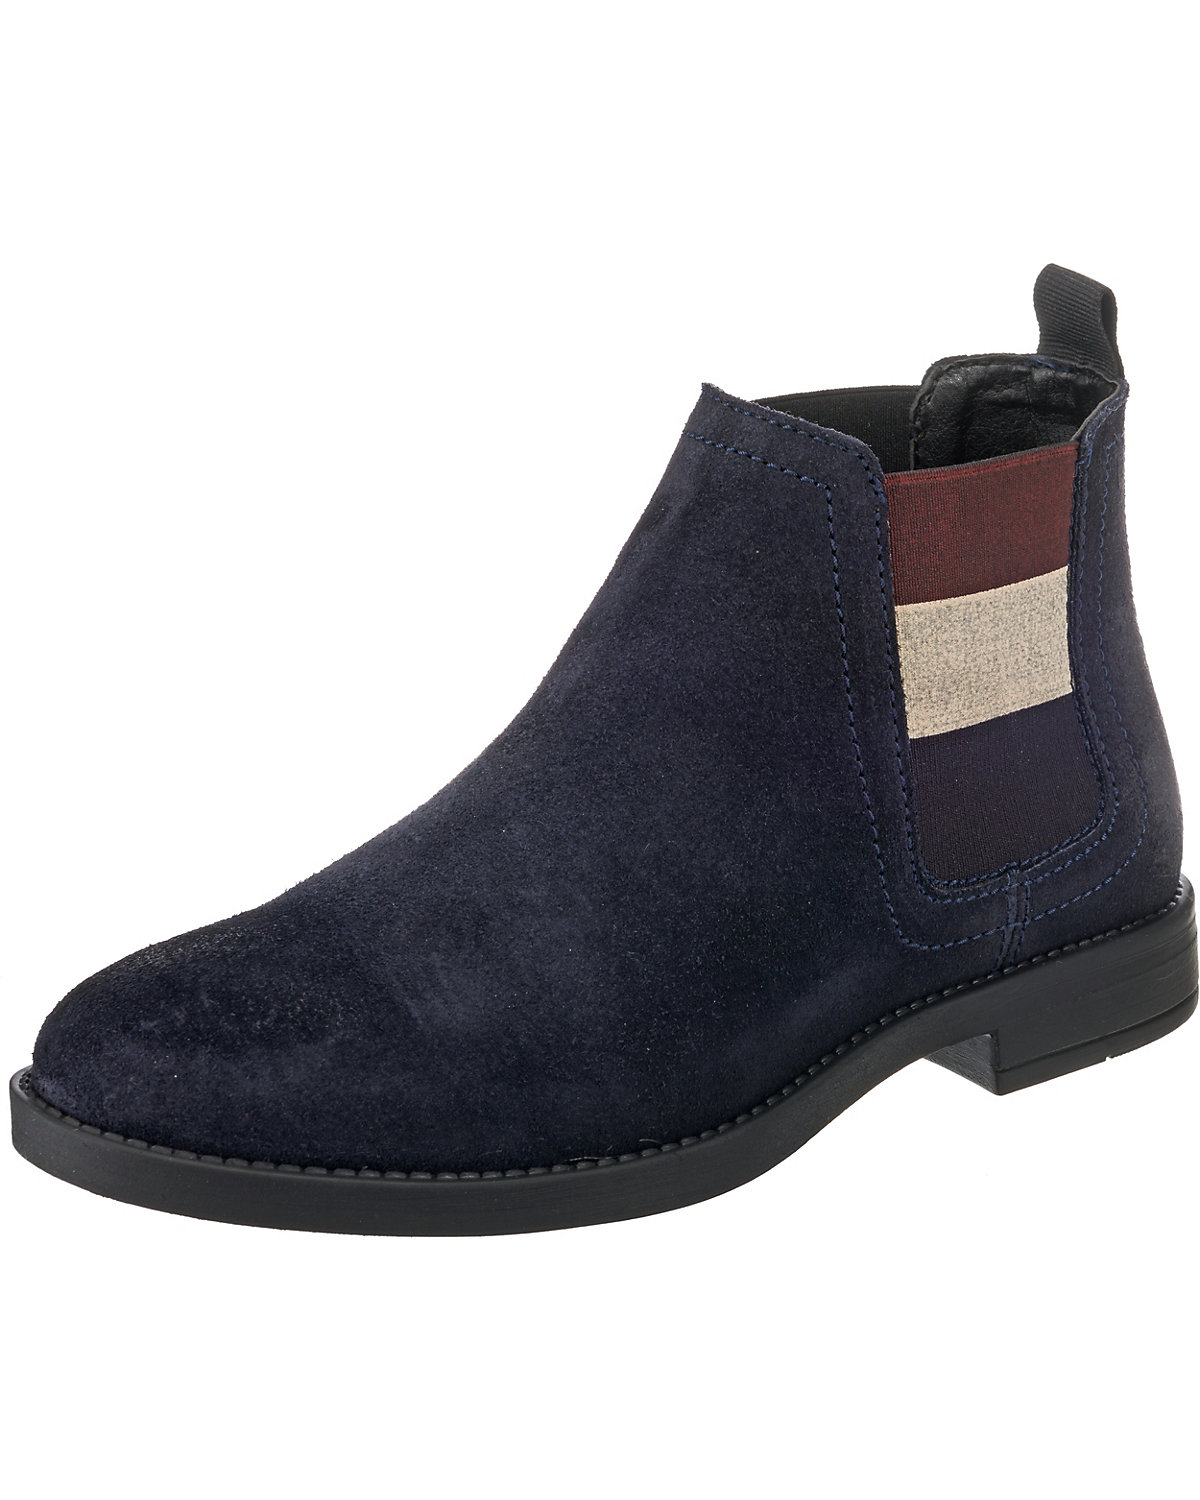 TOMMY JEANS, Chelsea Boots, blau